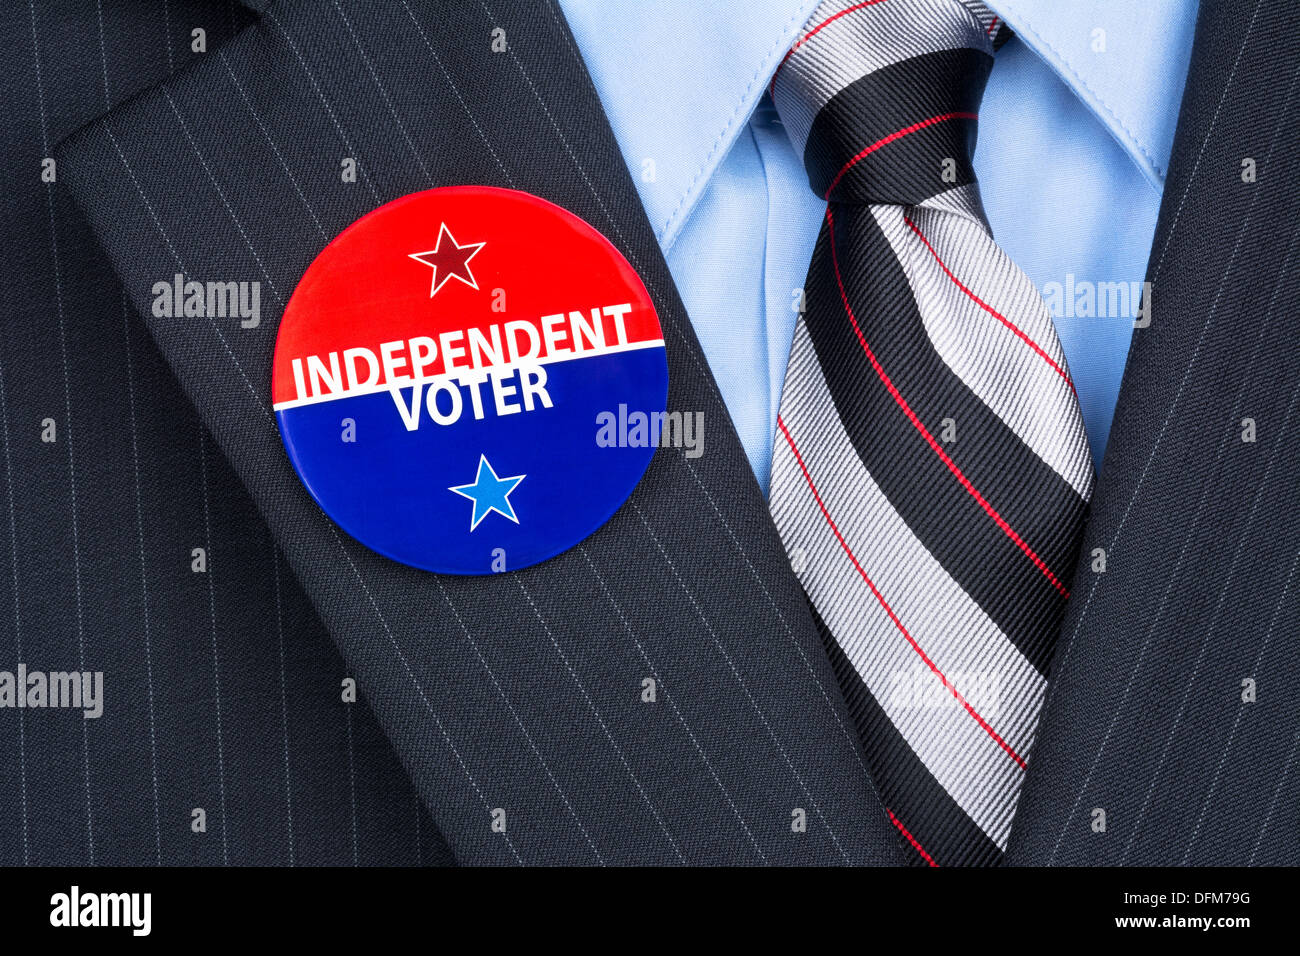 An independent voter wears his party pin on his suit lapel - Stock Image